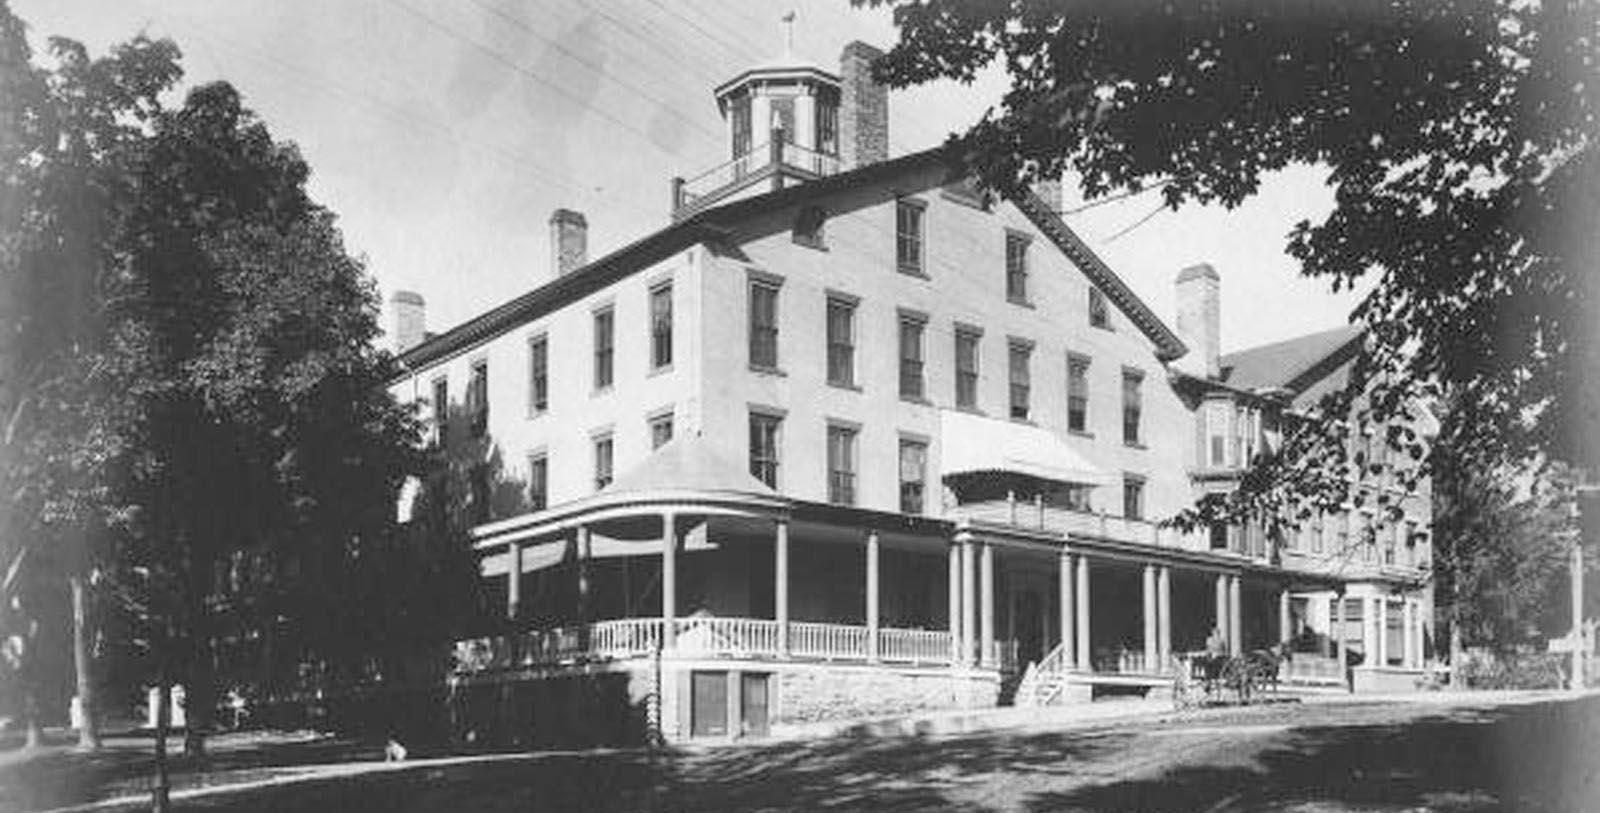 Historic Image of Hotel Exterior The Middlebury Inn, 1827, Member of Historic Hotels of America, in Middlebury, Vermont, Discover